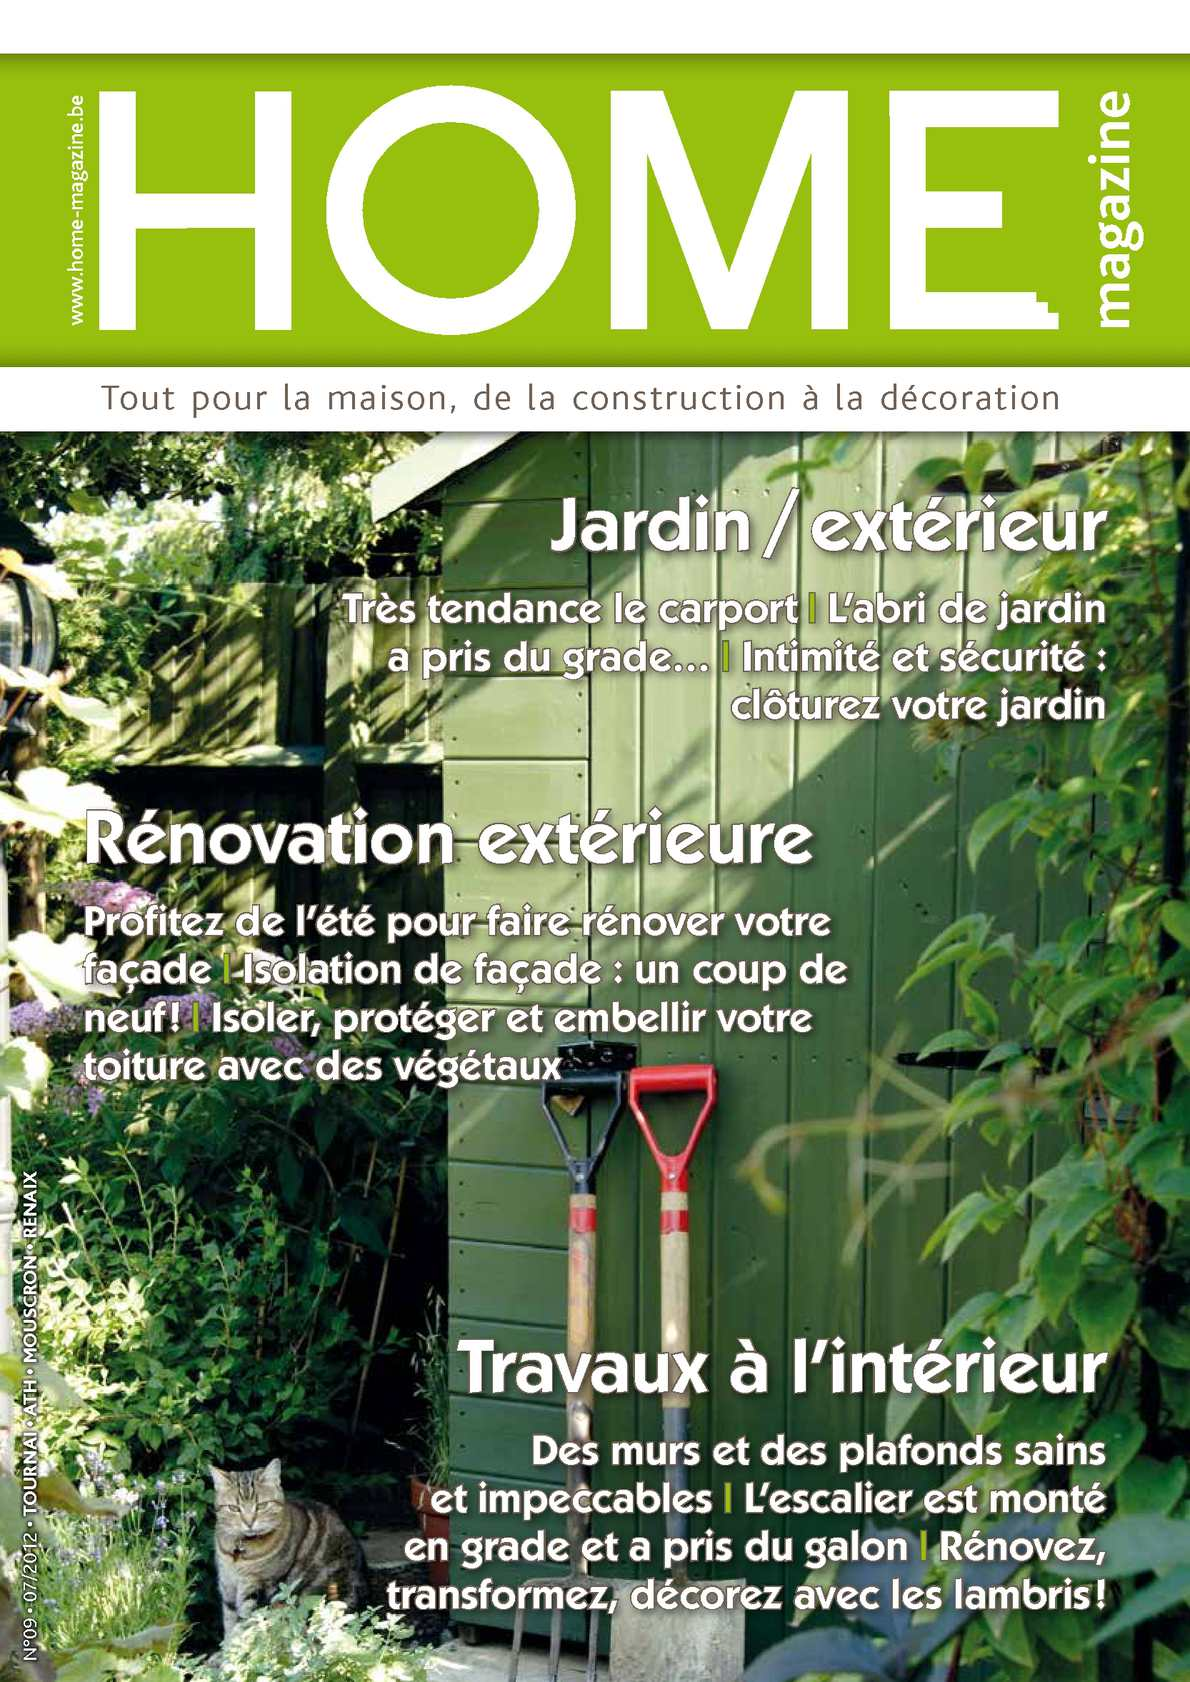 Calaméo - Home magazine n°9 - Tournai